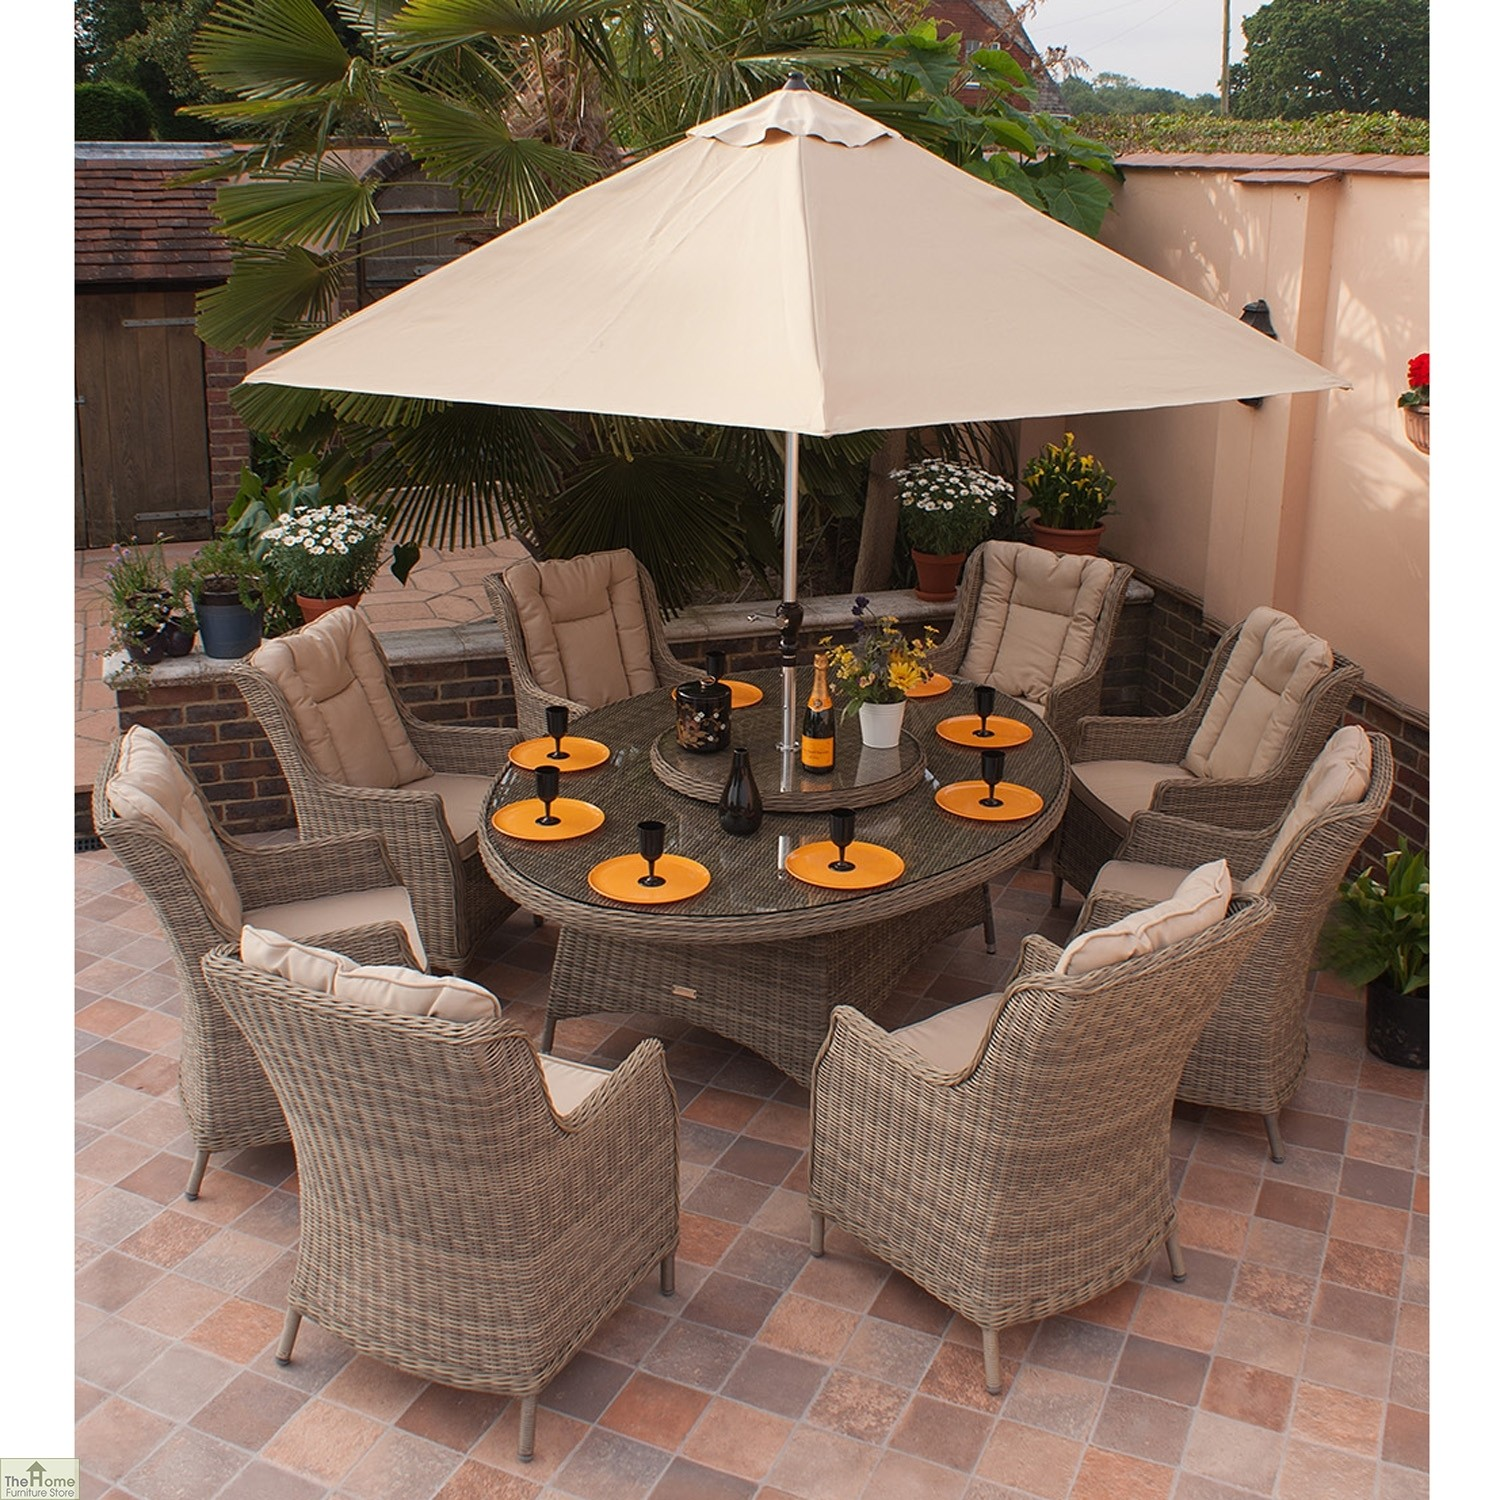 8 Seat Patio Dining Set Images Outdoor Patio Set Seats 10 100 Round Dining Sets Round Dining